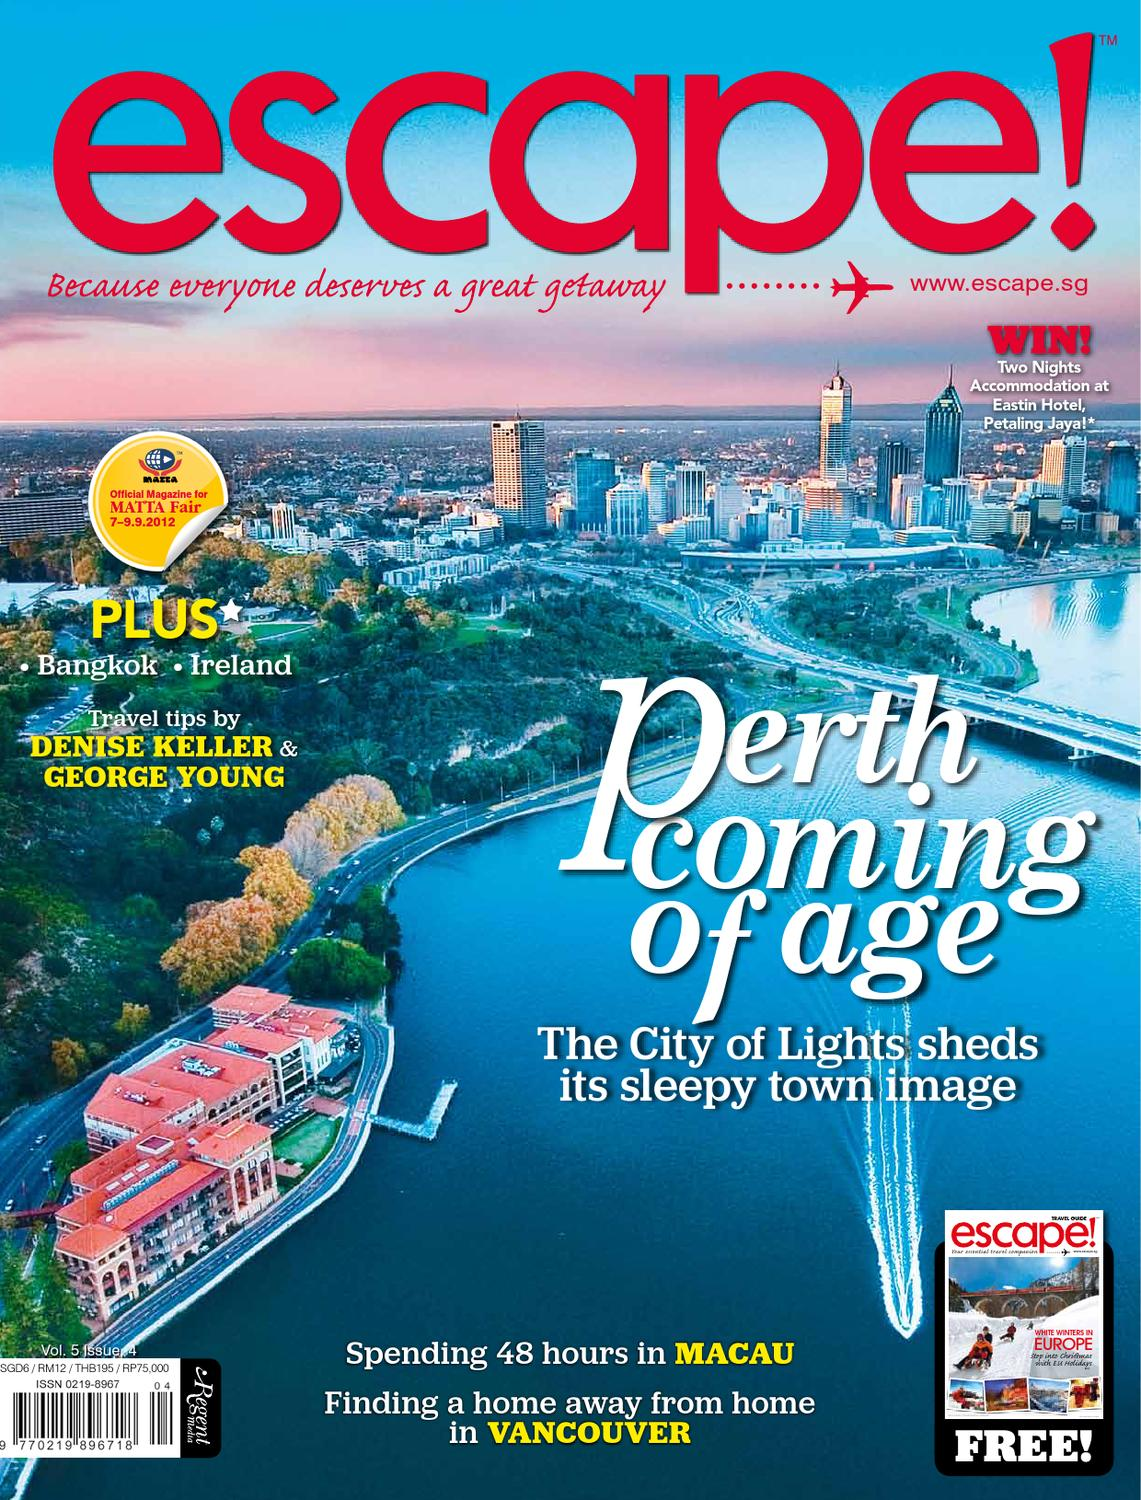 escape! - 2012 Aug/Sep by Regent Media Pte Ltd - issuu